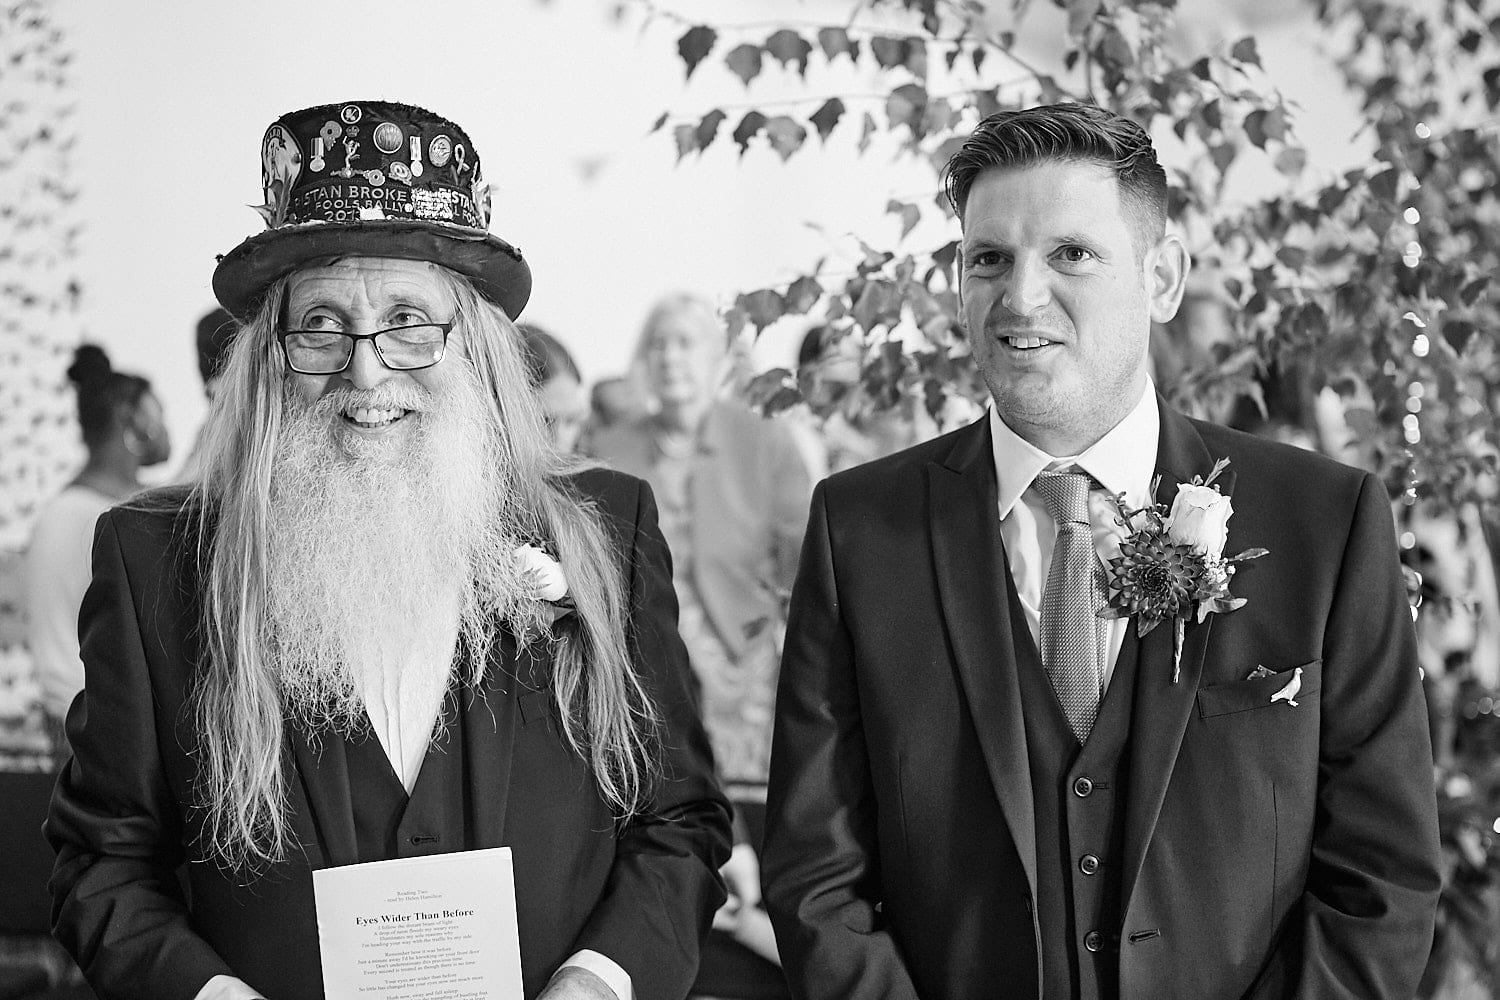 A groom and his father await the bride on his wedding day